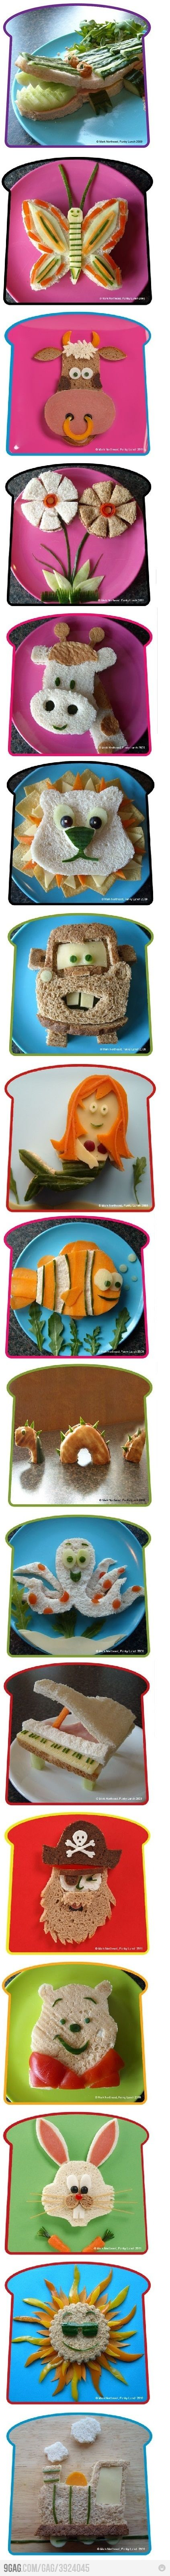 Play with your food - fun sandwich art